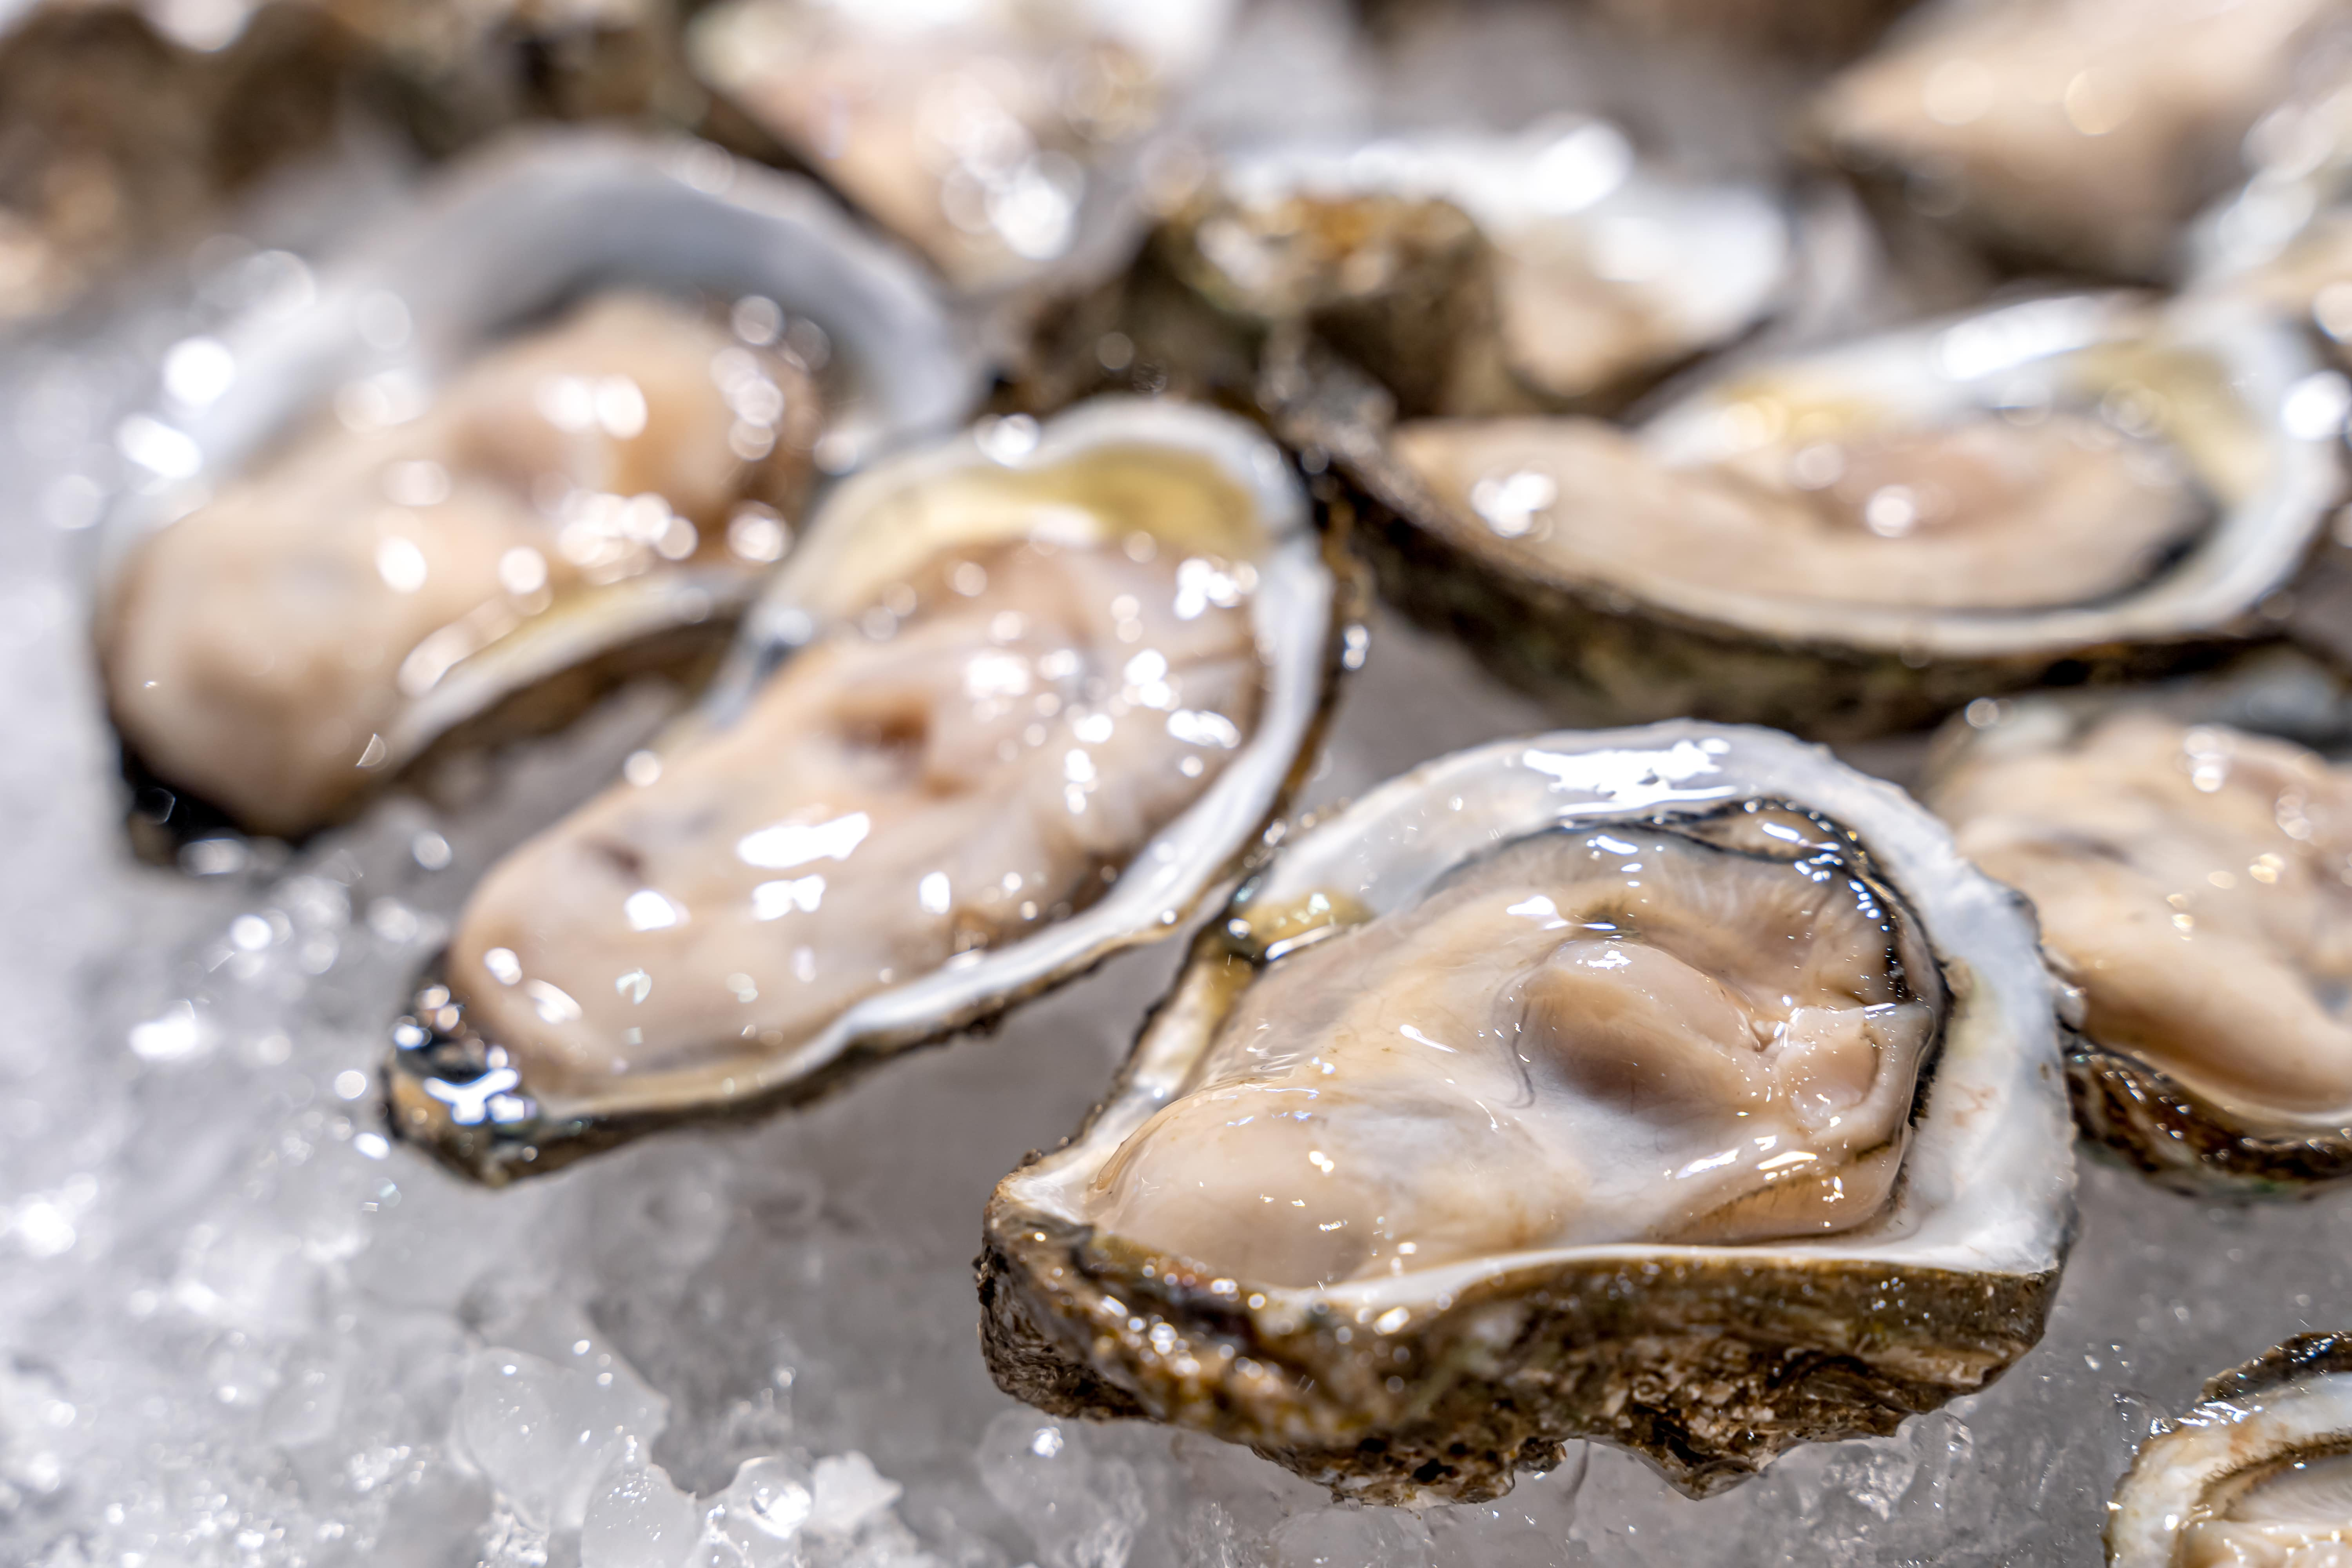 Fresh oysters at the Cambuhat Oyster Farm in Bohol